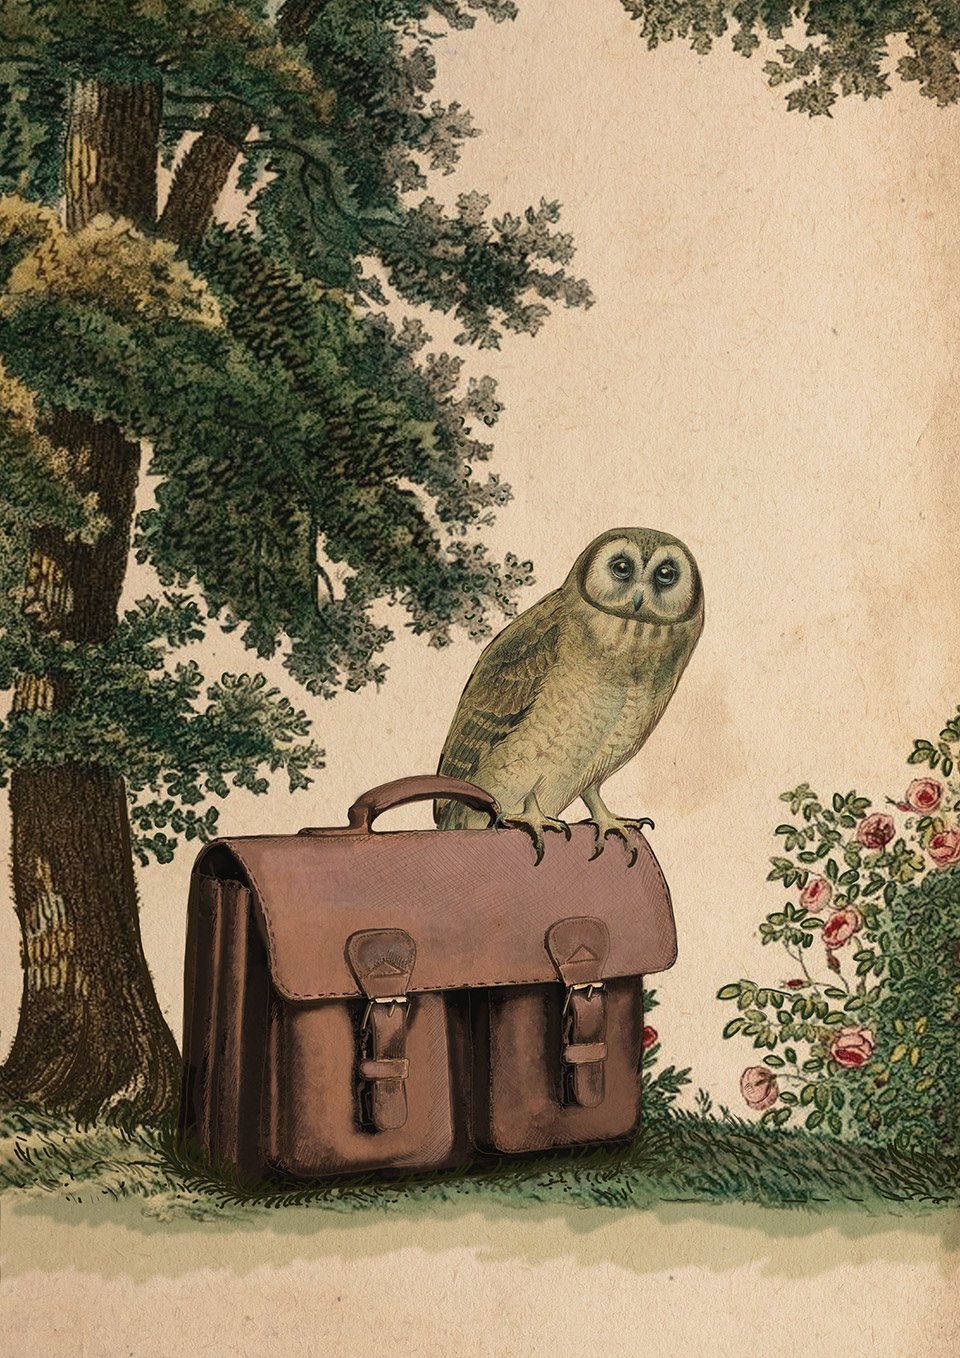 Illustration of an owl with a vegetable-tanned leather satchel.